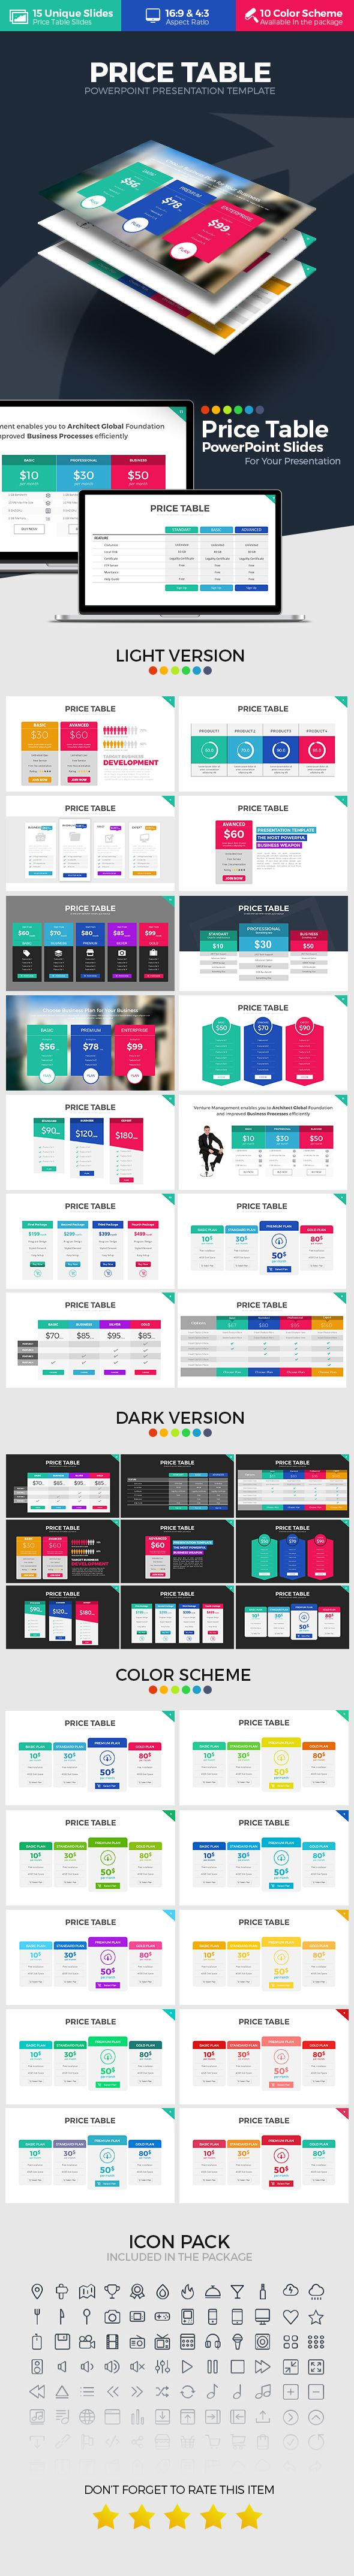 Price Table PowerPoint Template. Download here: https://graphicriver.net/item/price-table-powerpoint-template/17463768?ref=ksioks